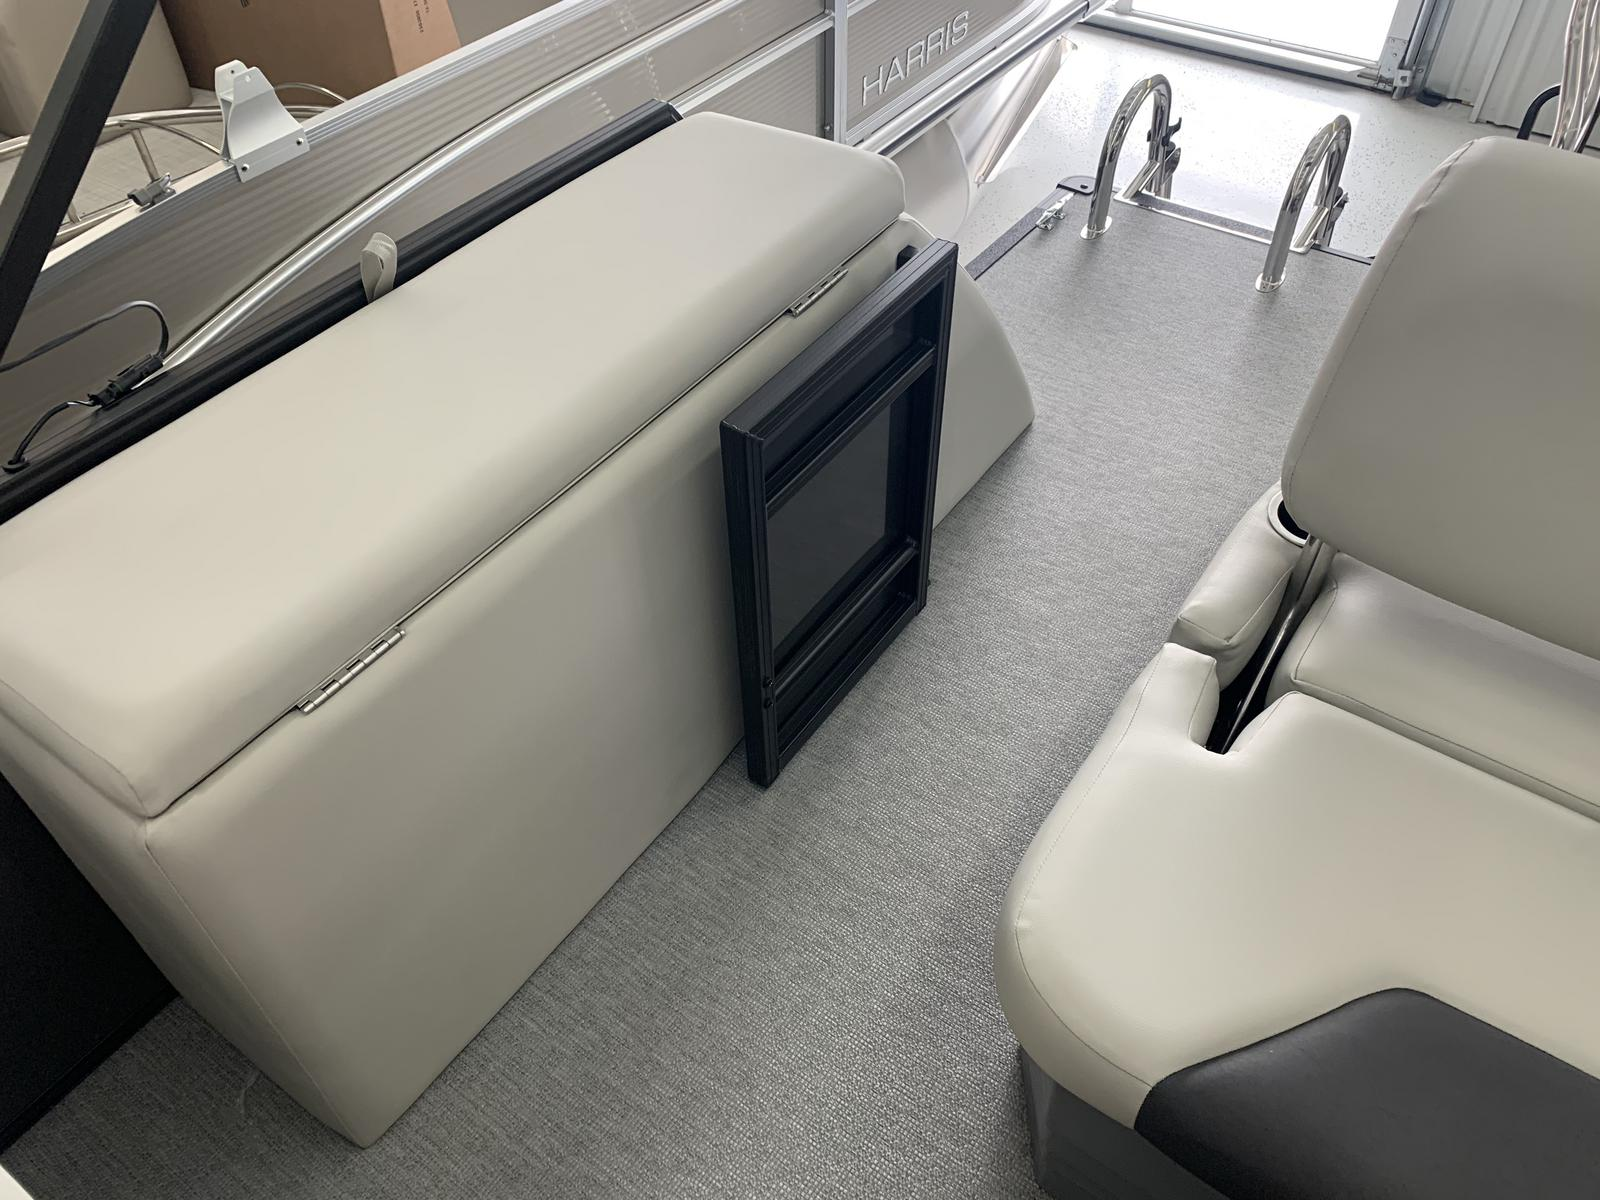 2021 SunChaser boat for sale, model of the boat is Geneva Cruise 22 SB & Image # 5 of 14